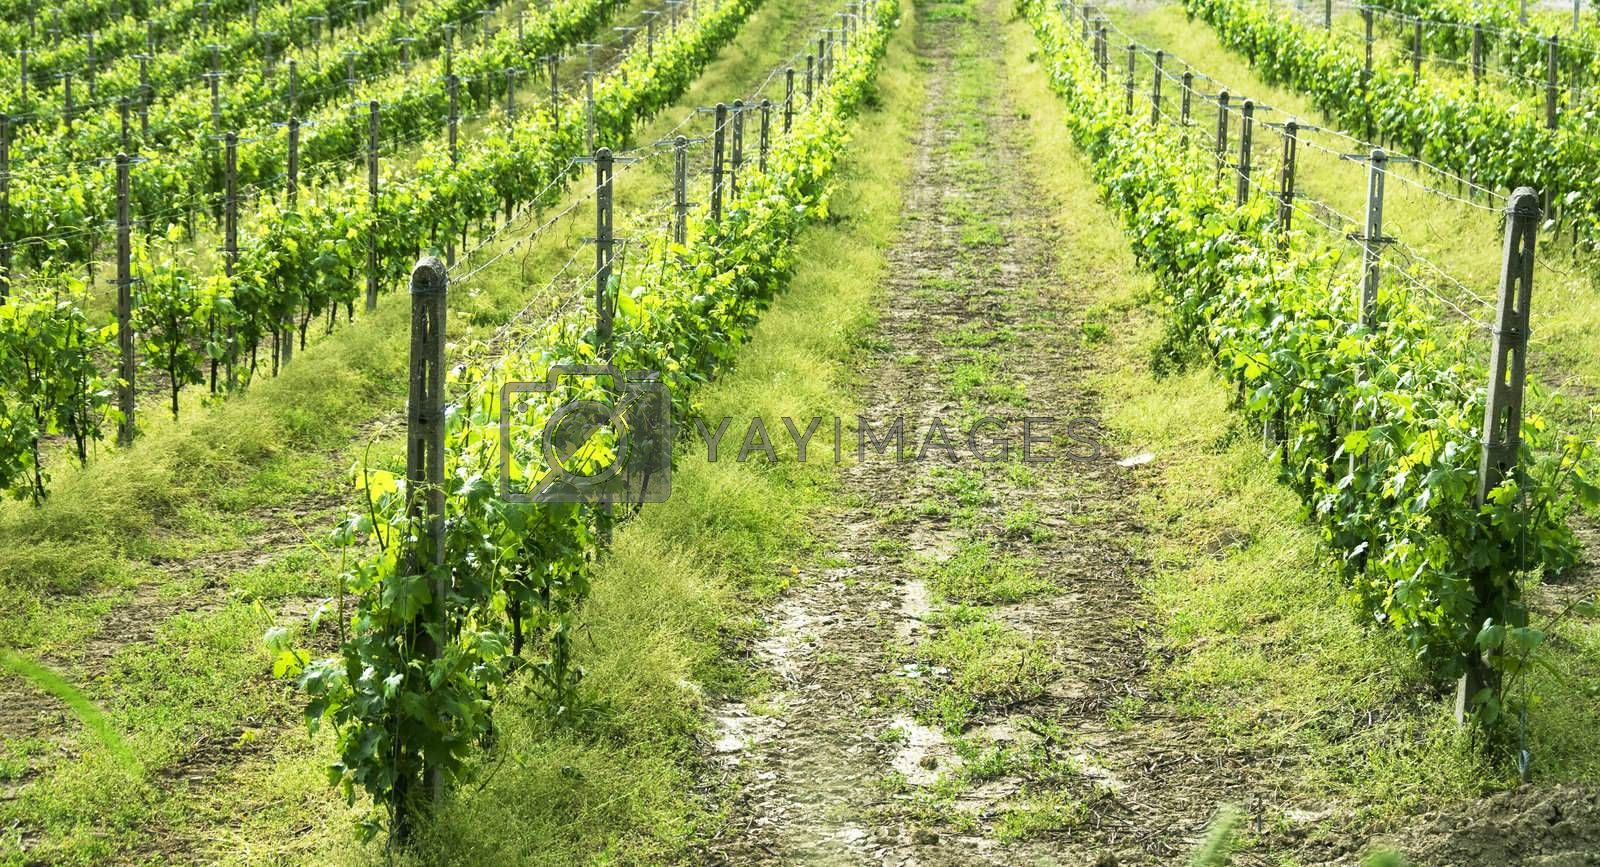 Royalty free image of Wine by Koufax73